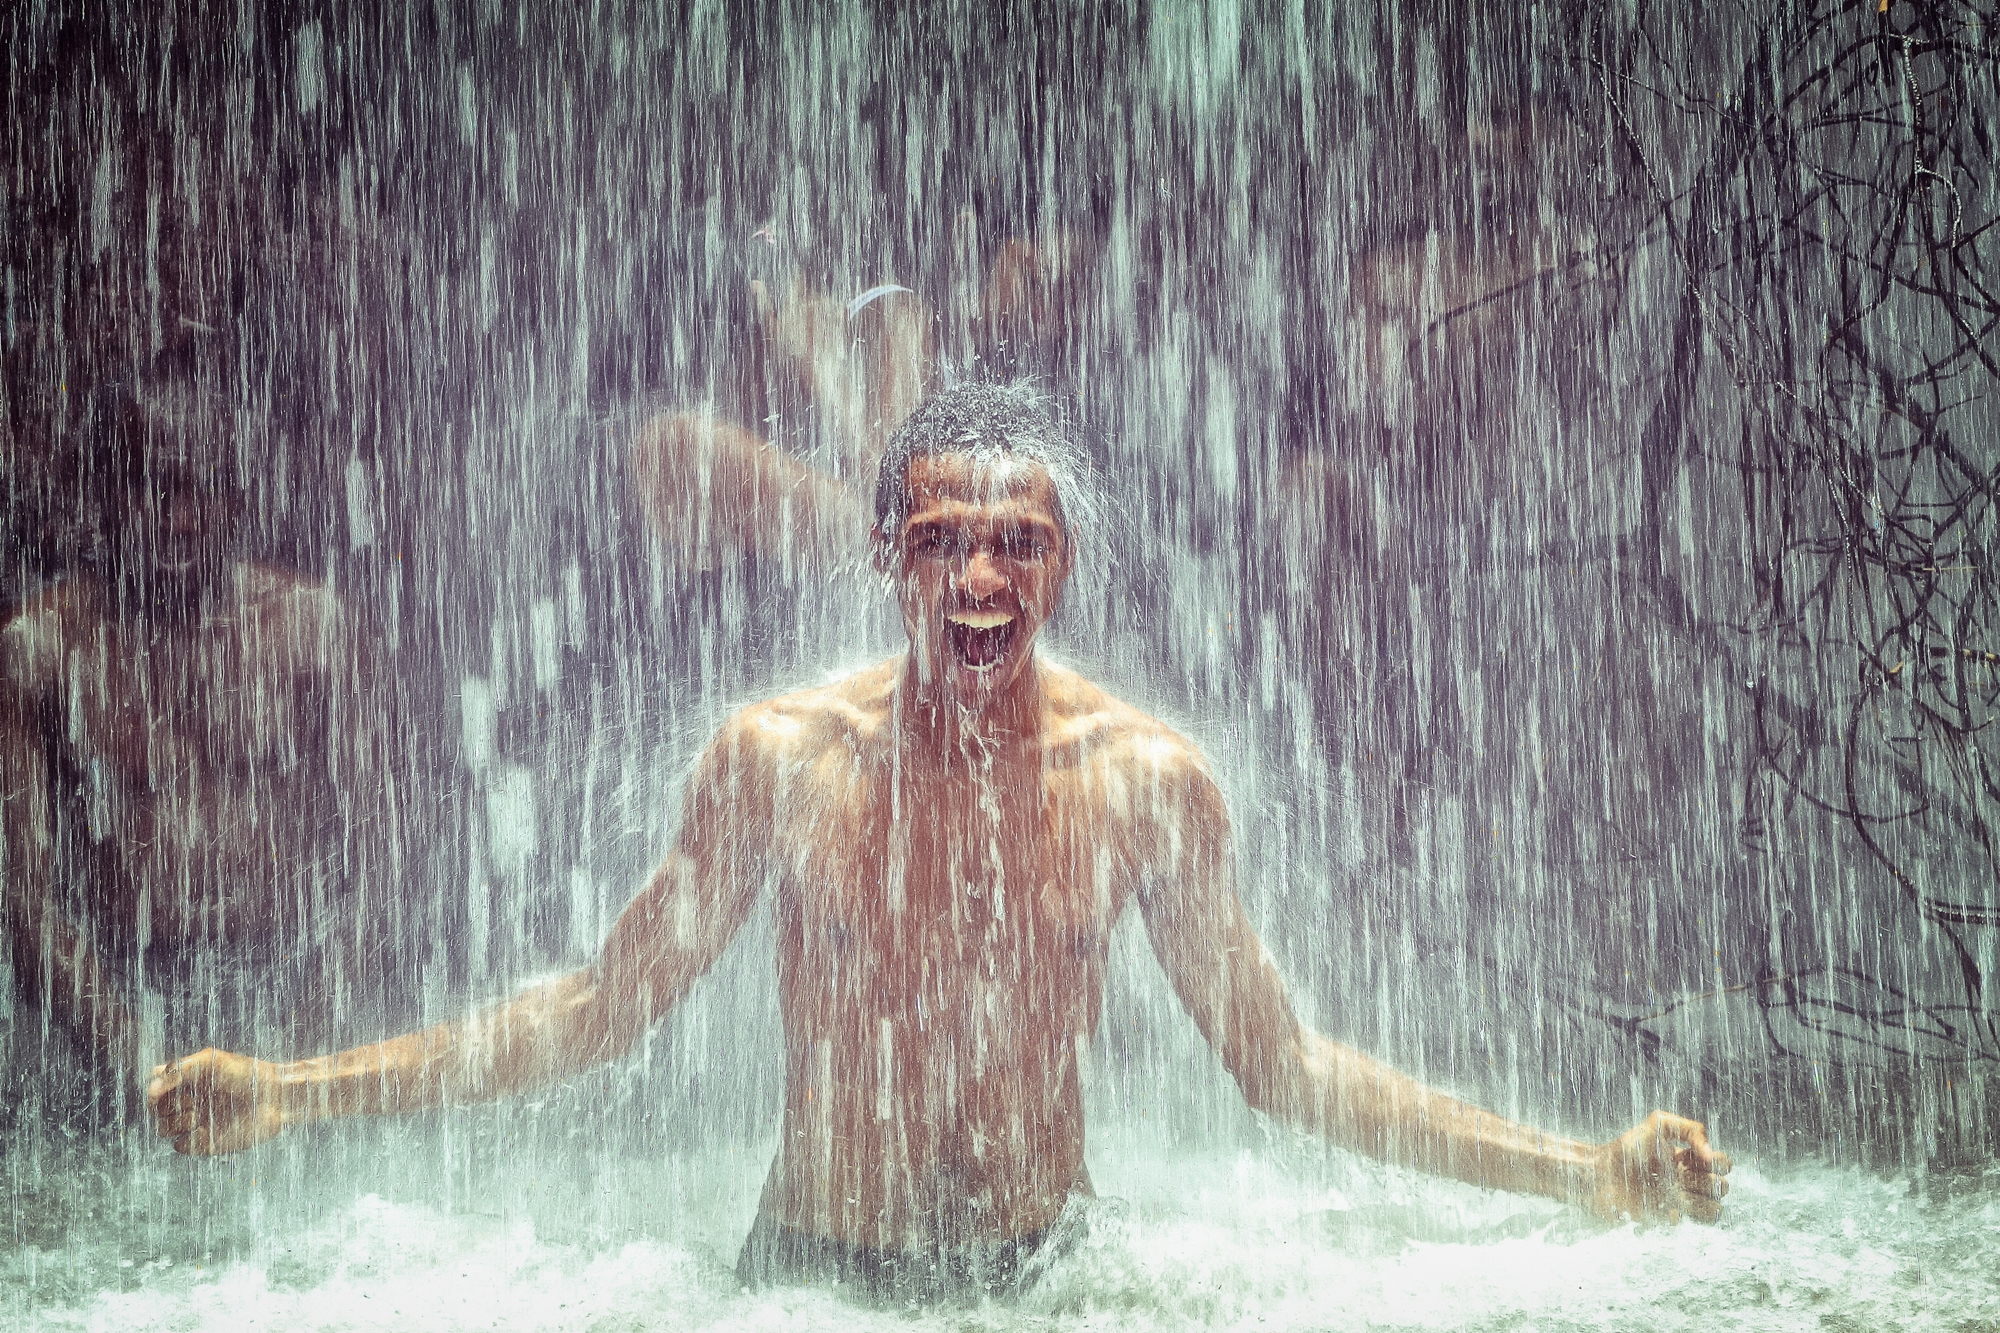 man-under-waterfall-2150164